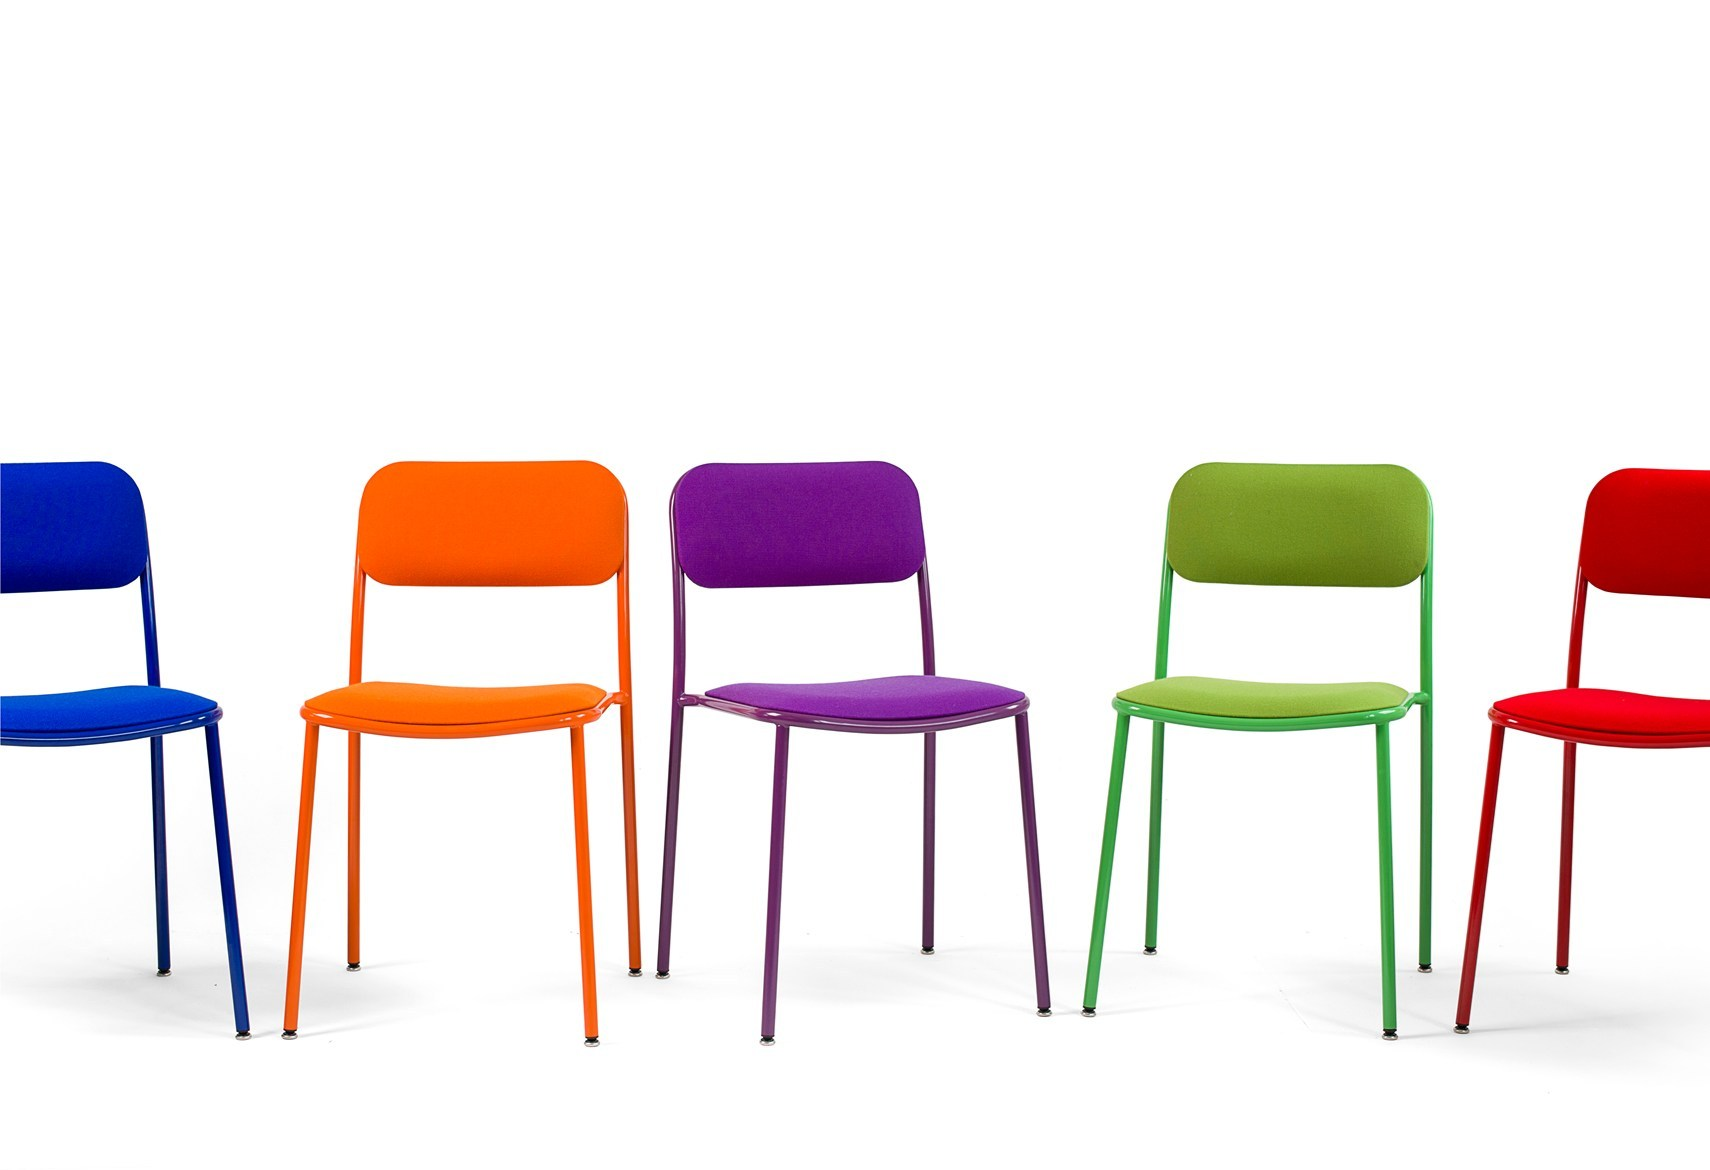 Verso Chairs by Tomoko Azumi for Mark Product